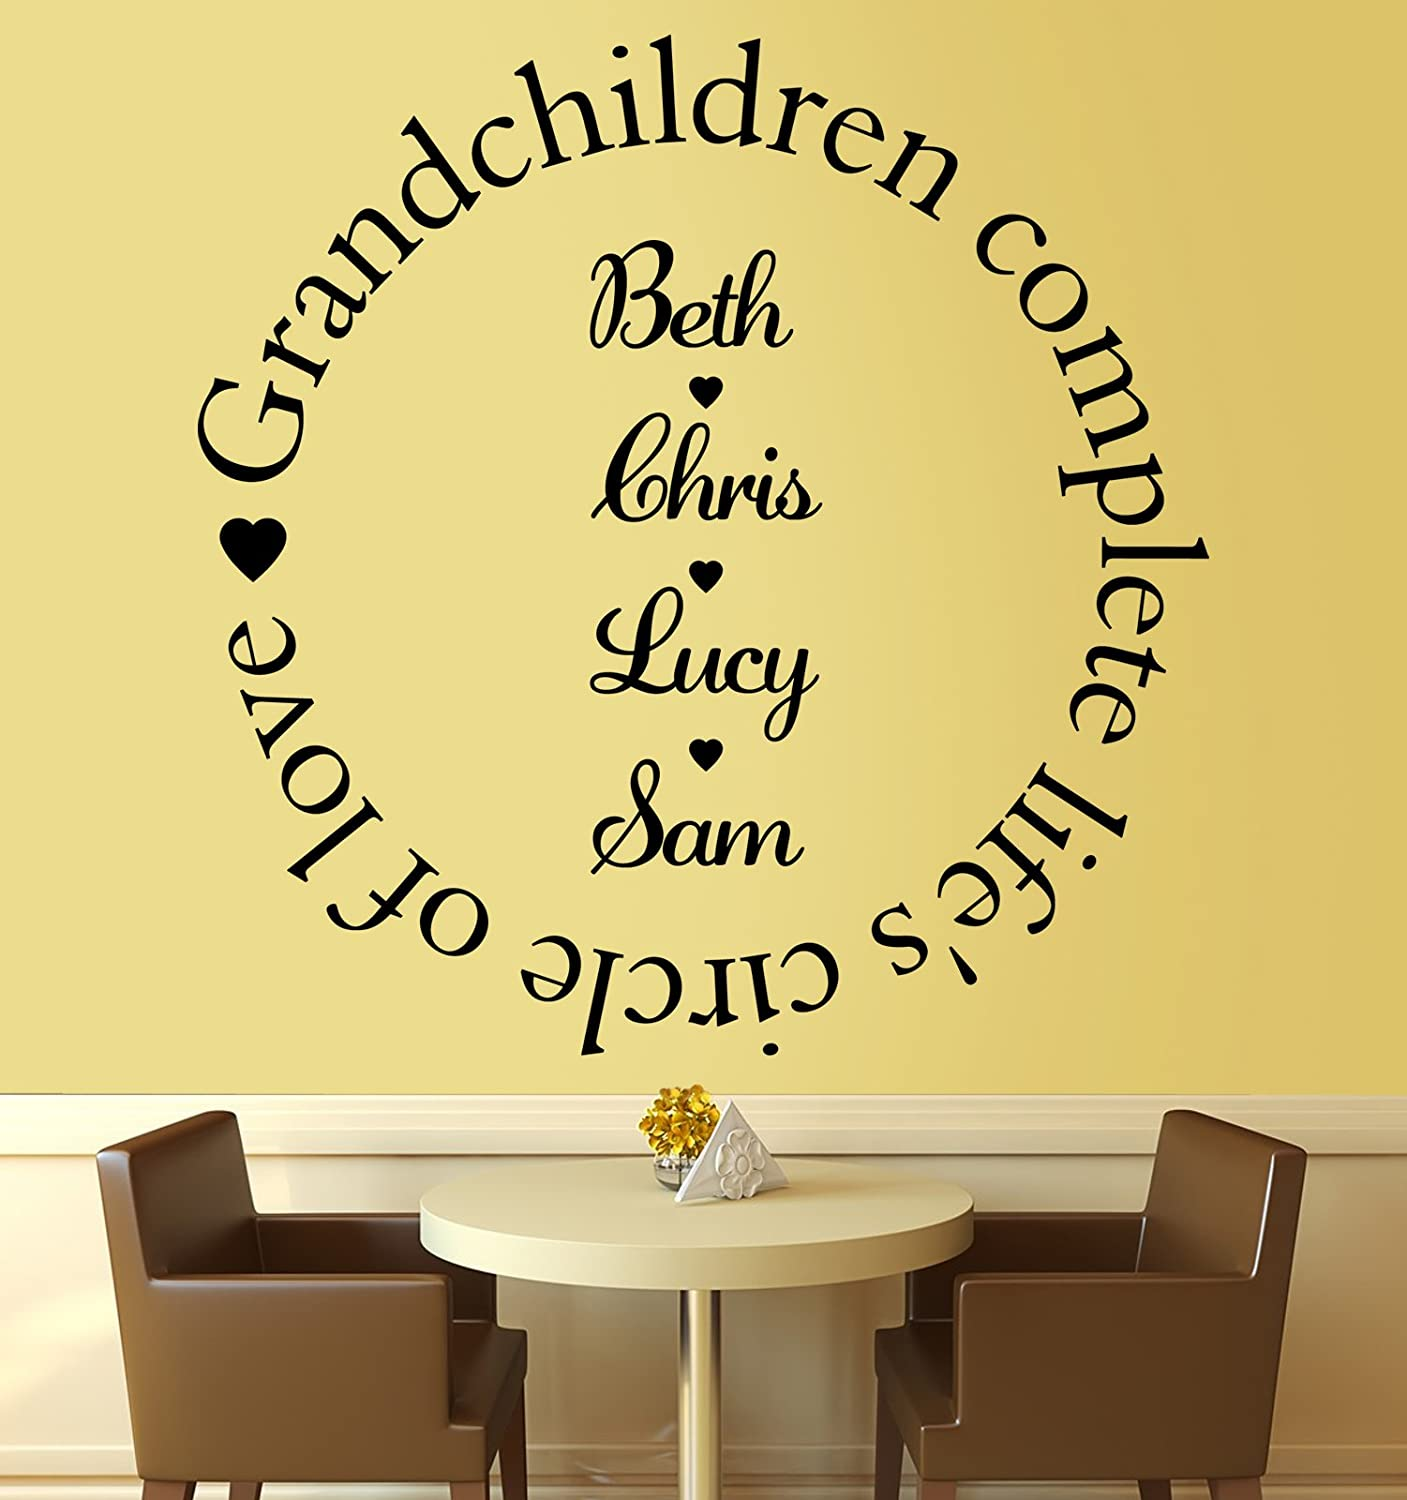 Grandchildren Complete the Circle of Love - Wall Sticker Quote ...